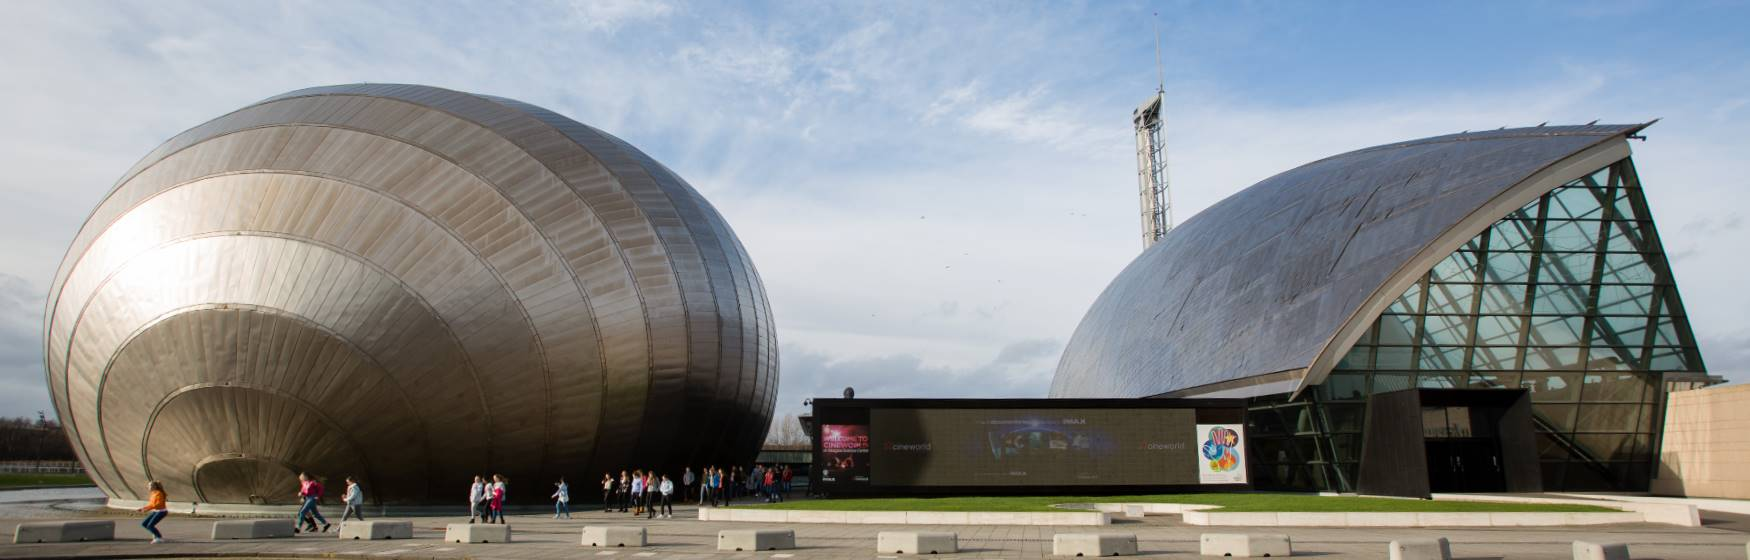 Glasgow Science Centre buildings. Photo Martin Shields / Glasgow Science Centre